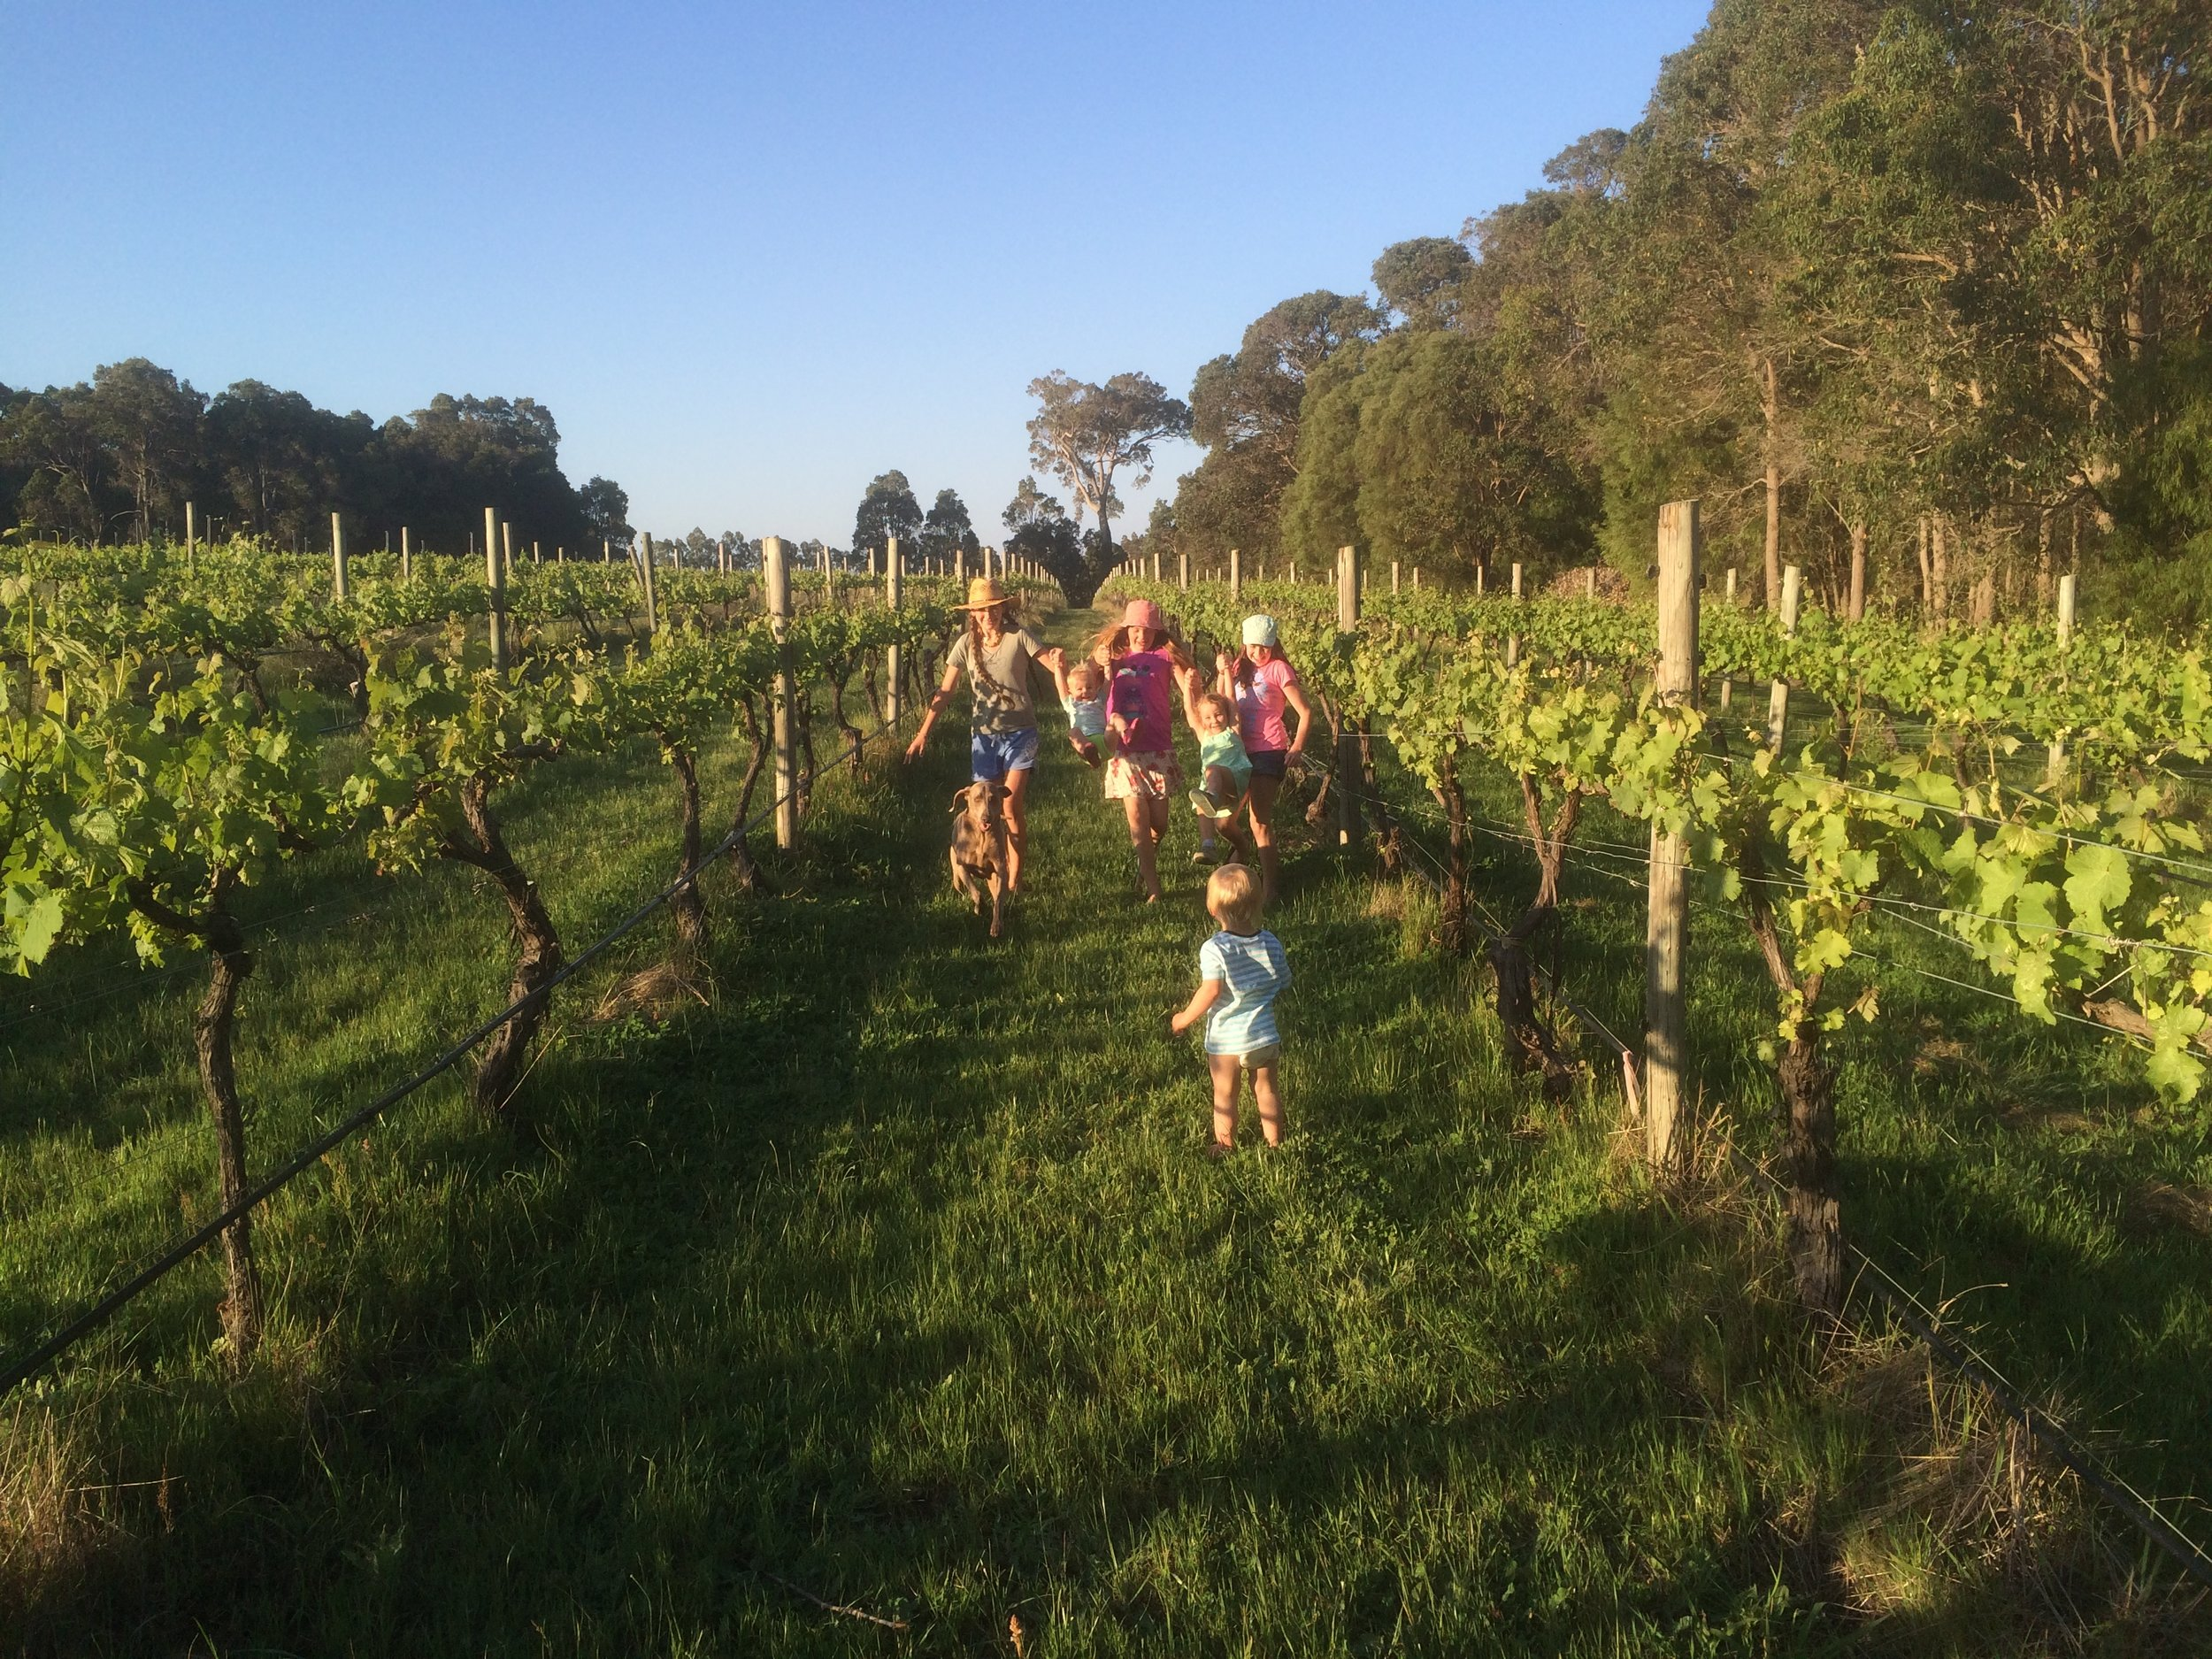 Kids in vineyard full.JPG